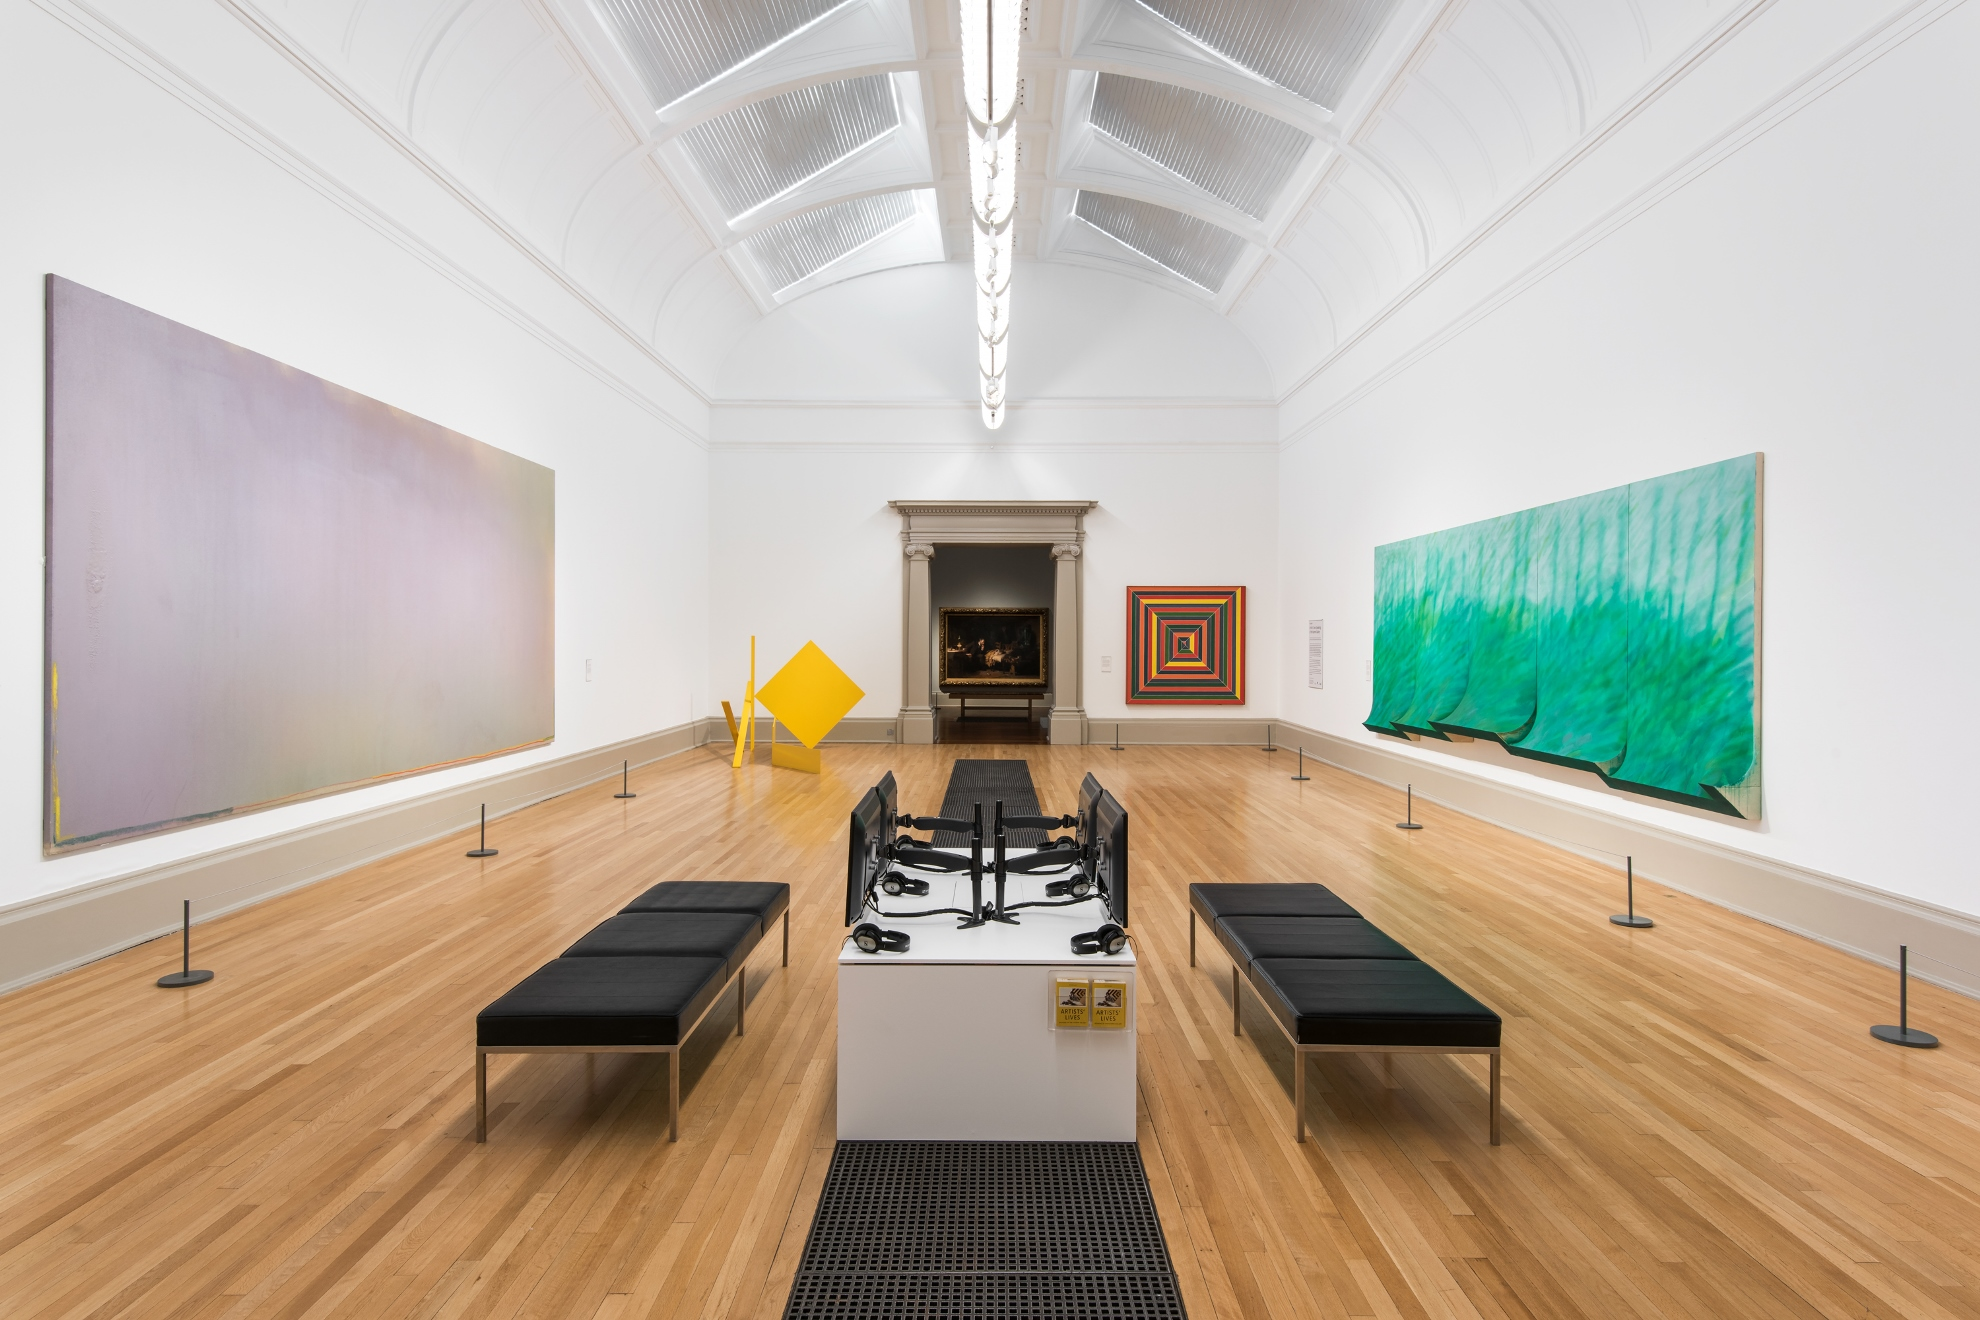 <i>Instant Loveland</i> by Jules Olitski (1968), <i>Yellow Swing</i> by Anthony Caro (1965), <i>Hyena Stomp</i> by Frank Stella (1962), and <i>Riverfall</i> by Richard Smith (1969) in the exhibition <i>Artists' Lives: Speaking of the Kasmin Gallery</i>, Tate Britain, December 2016 - April 2018. Photograph Joe Humphrys. Courtesy Tate.